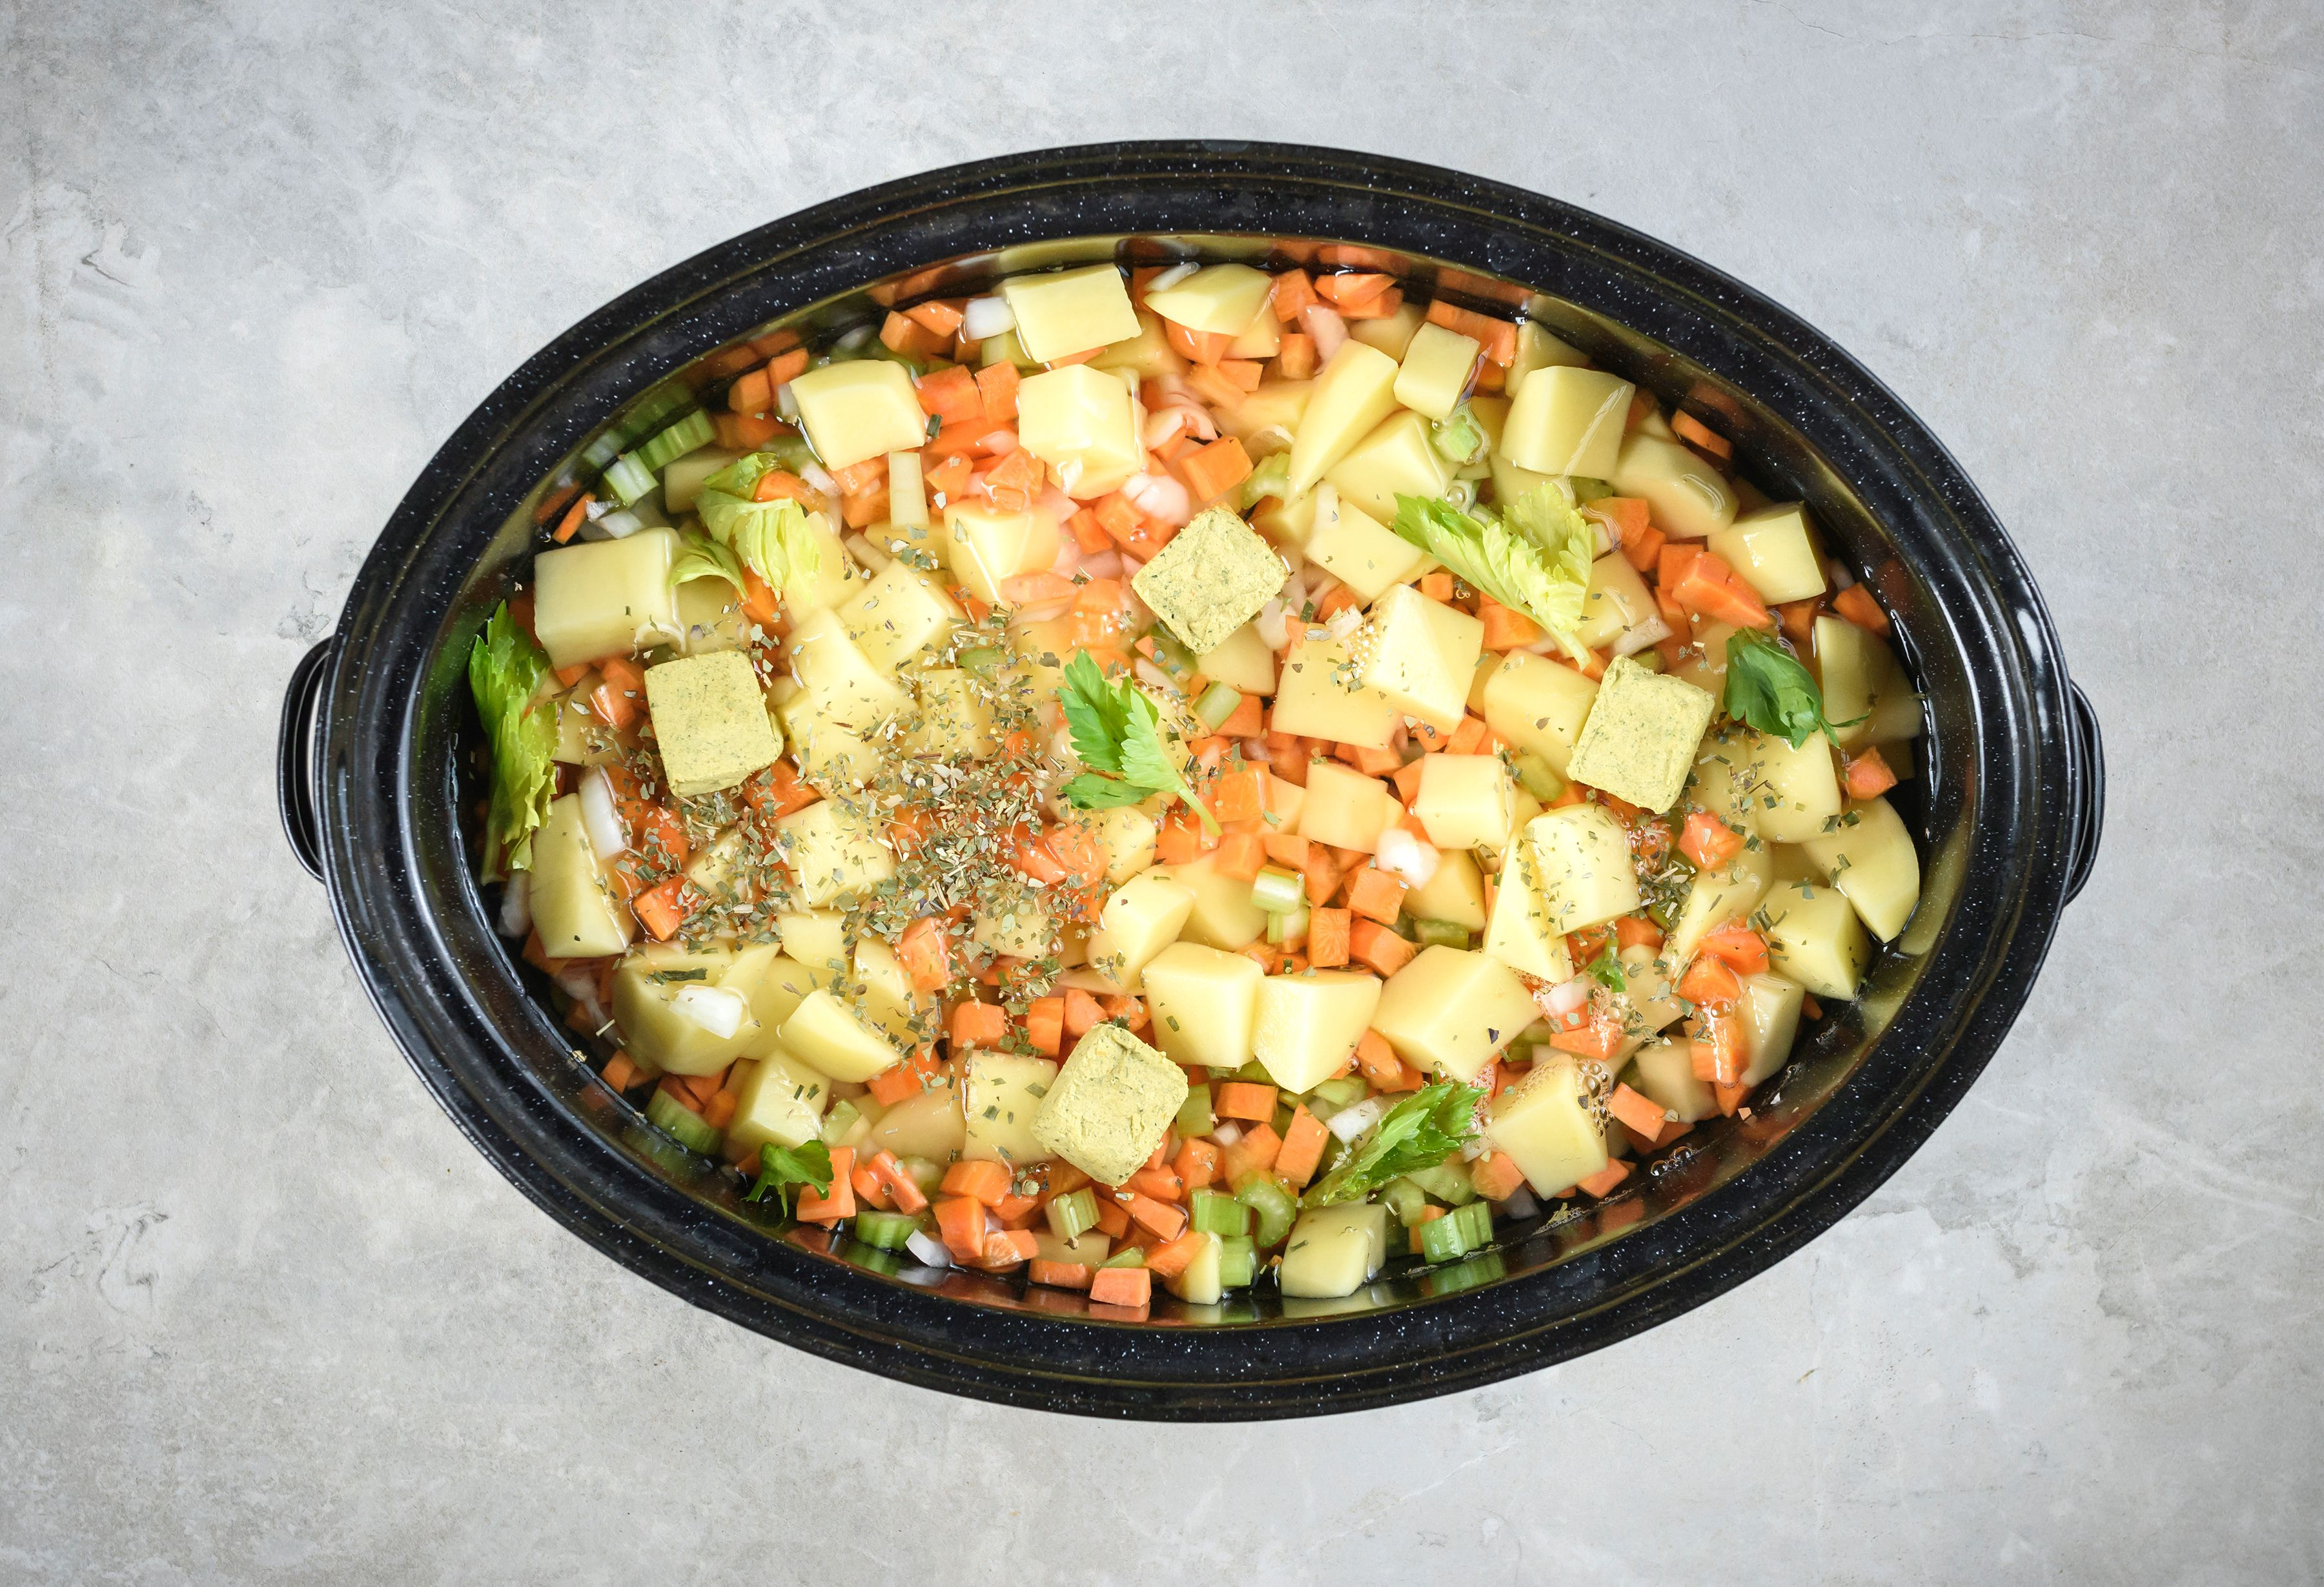 Combined soup ingredients in slow cooker